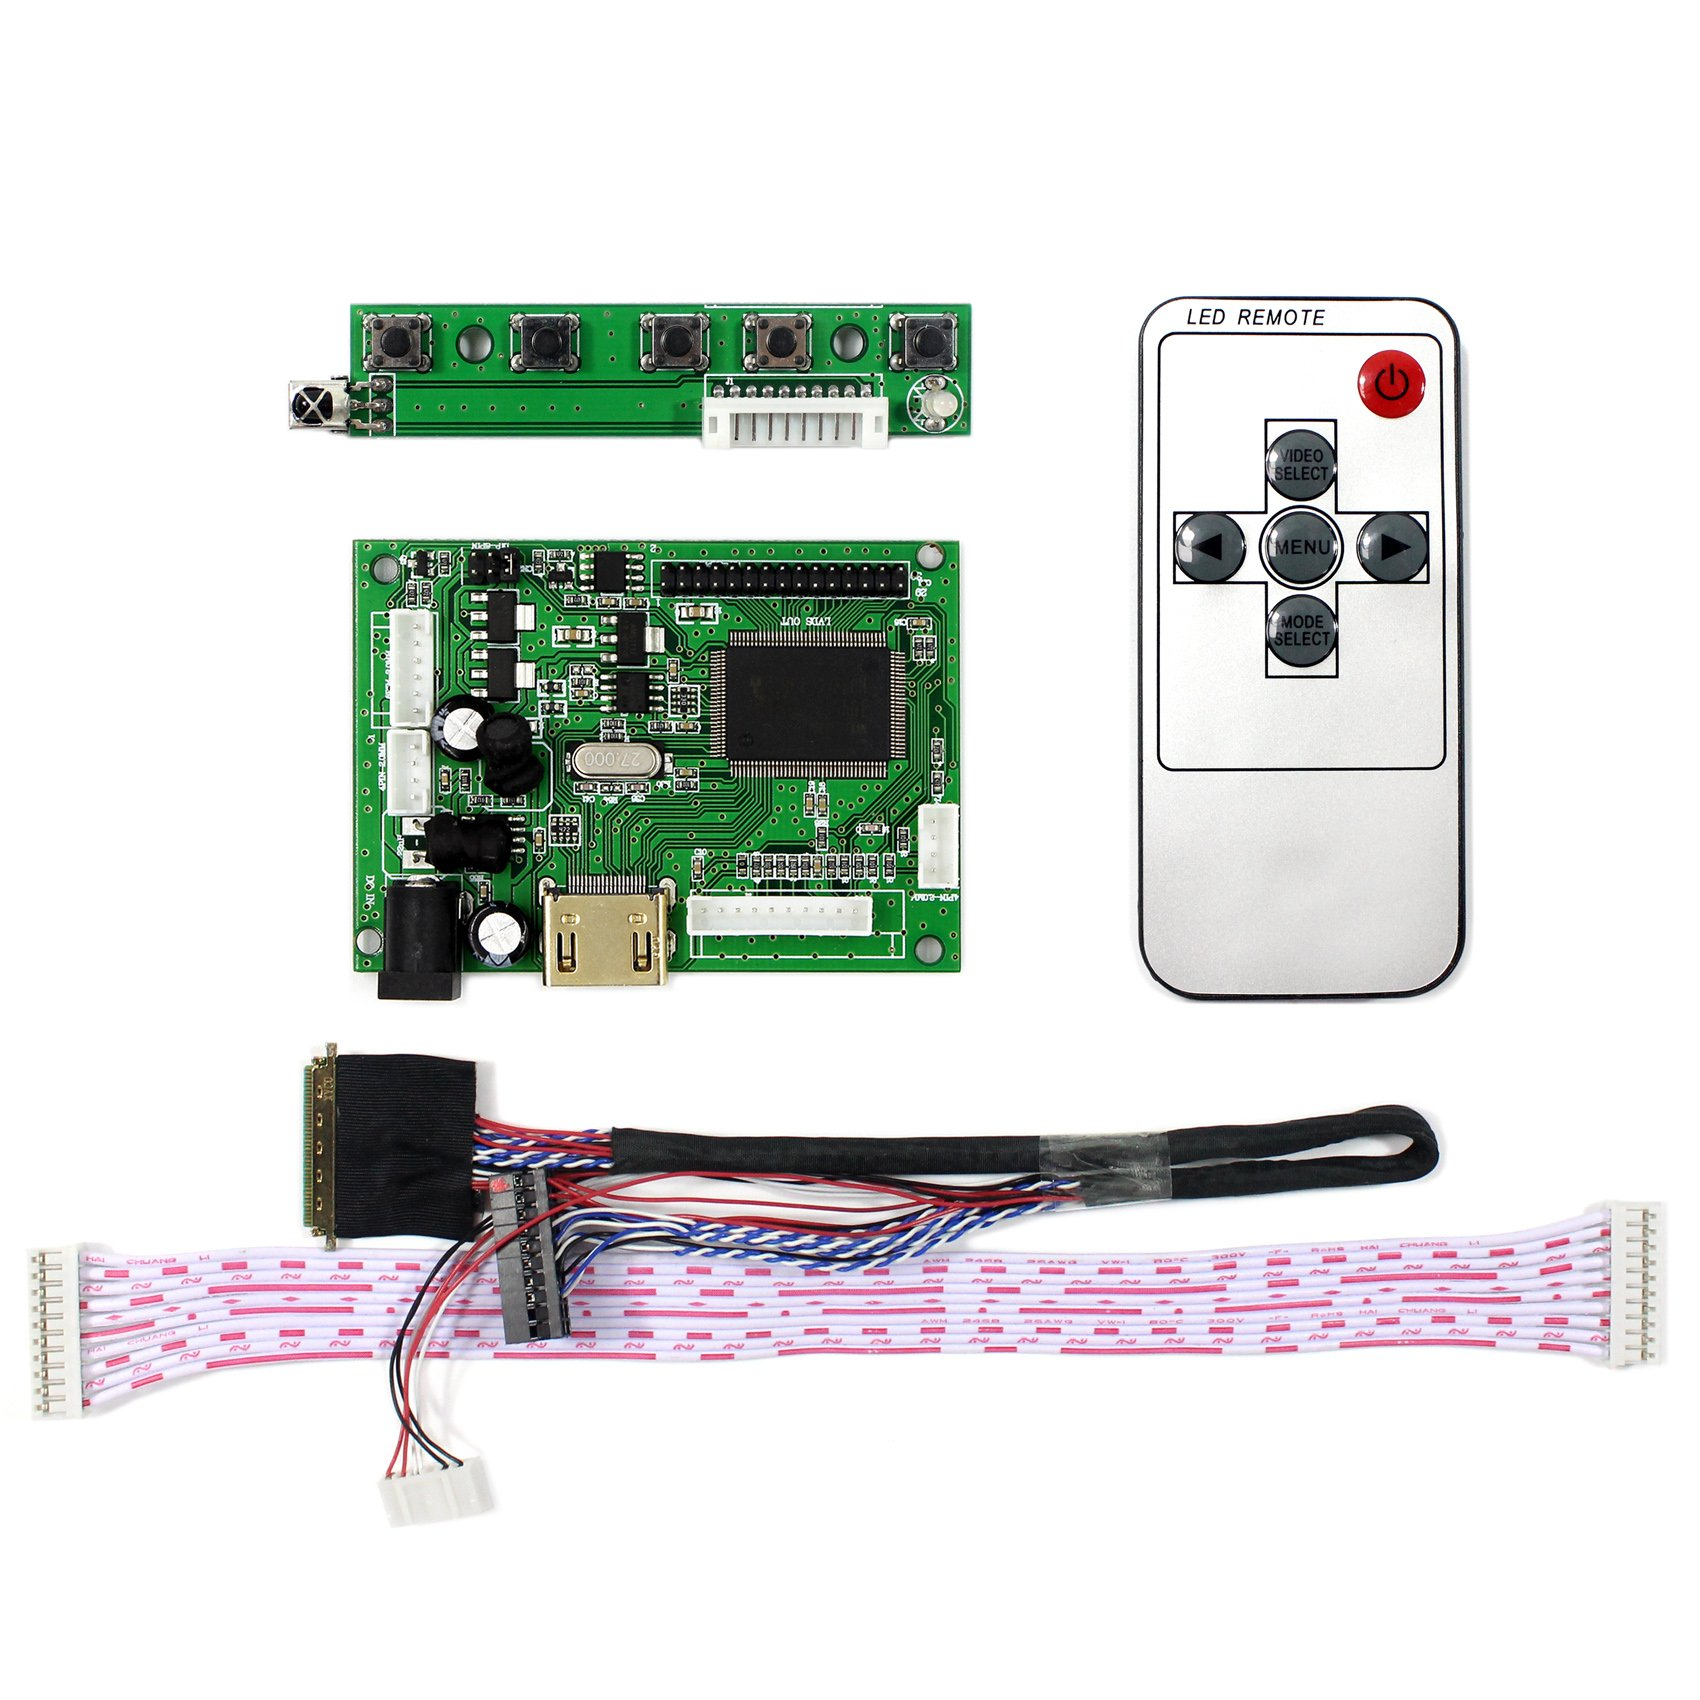 VSDISPLAY HDMI LCD Controller Board Work For 14'' 15.6'' LTN140AT02 LP156WH4 B156XW02 1366x768 40Pin LCD Panel by VSDISPLAY (Image #2)